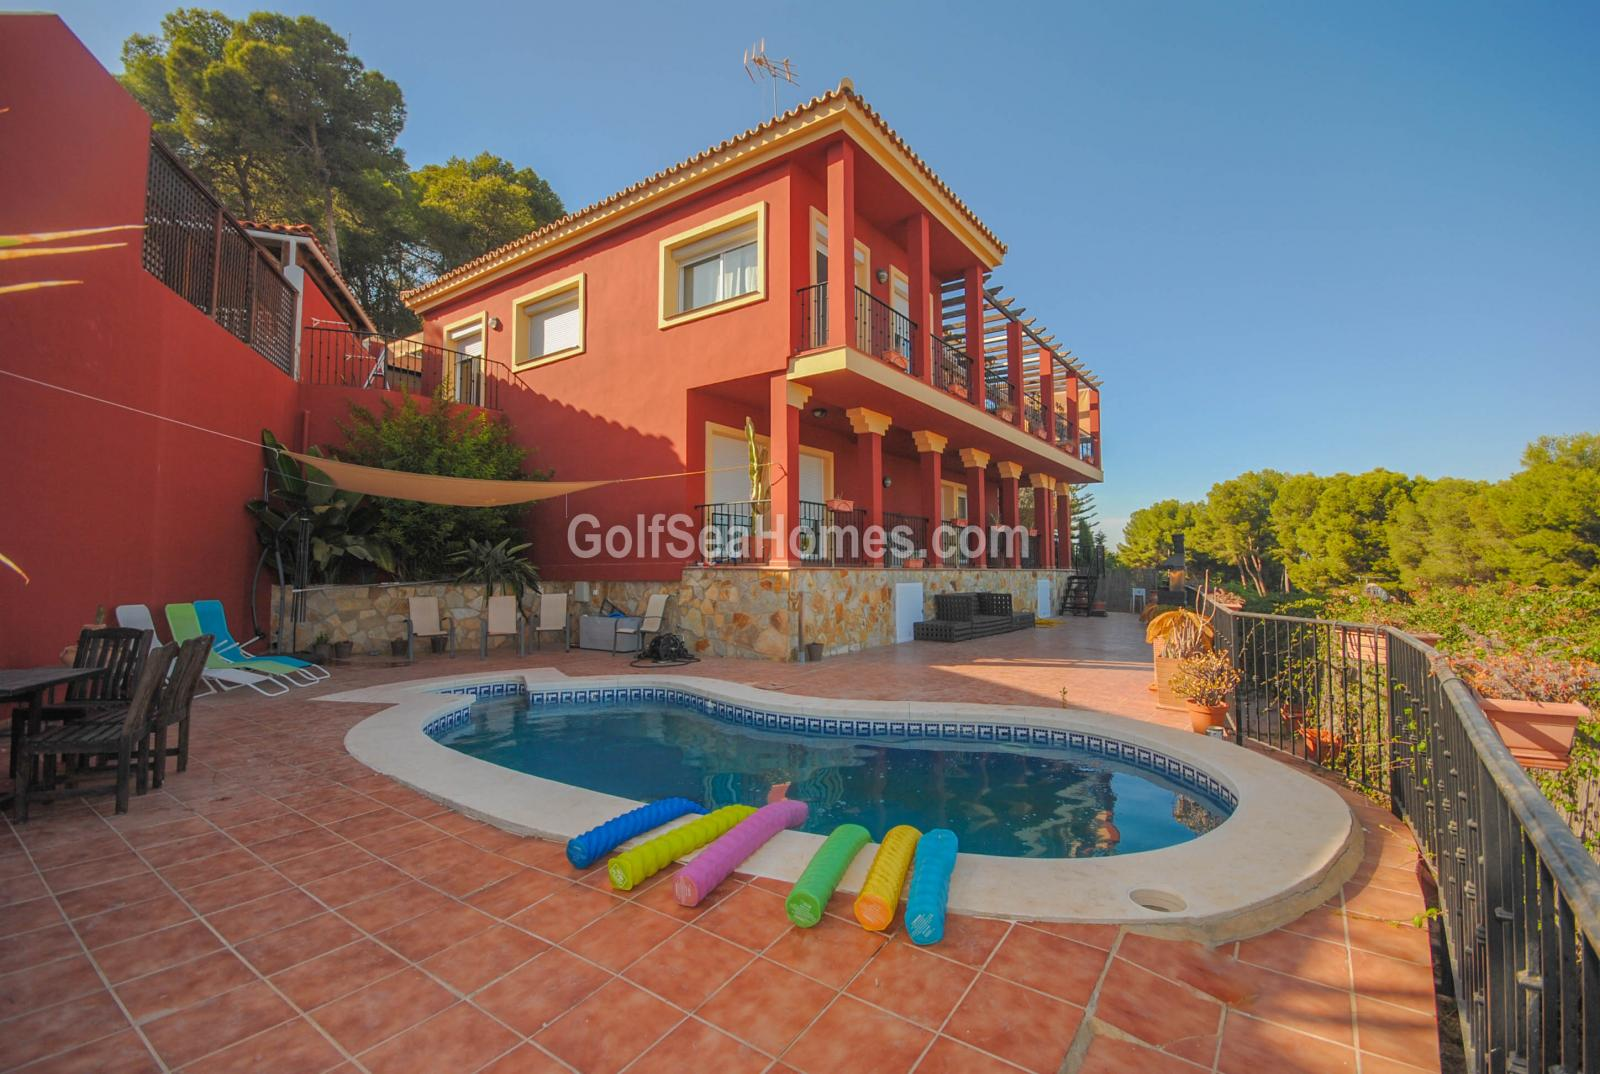 Marvelous Photo 1   Detached Villa To Rent In Torremolinos, Ref: 2037484. U2039u203a